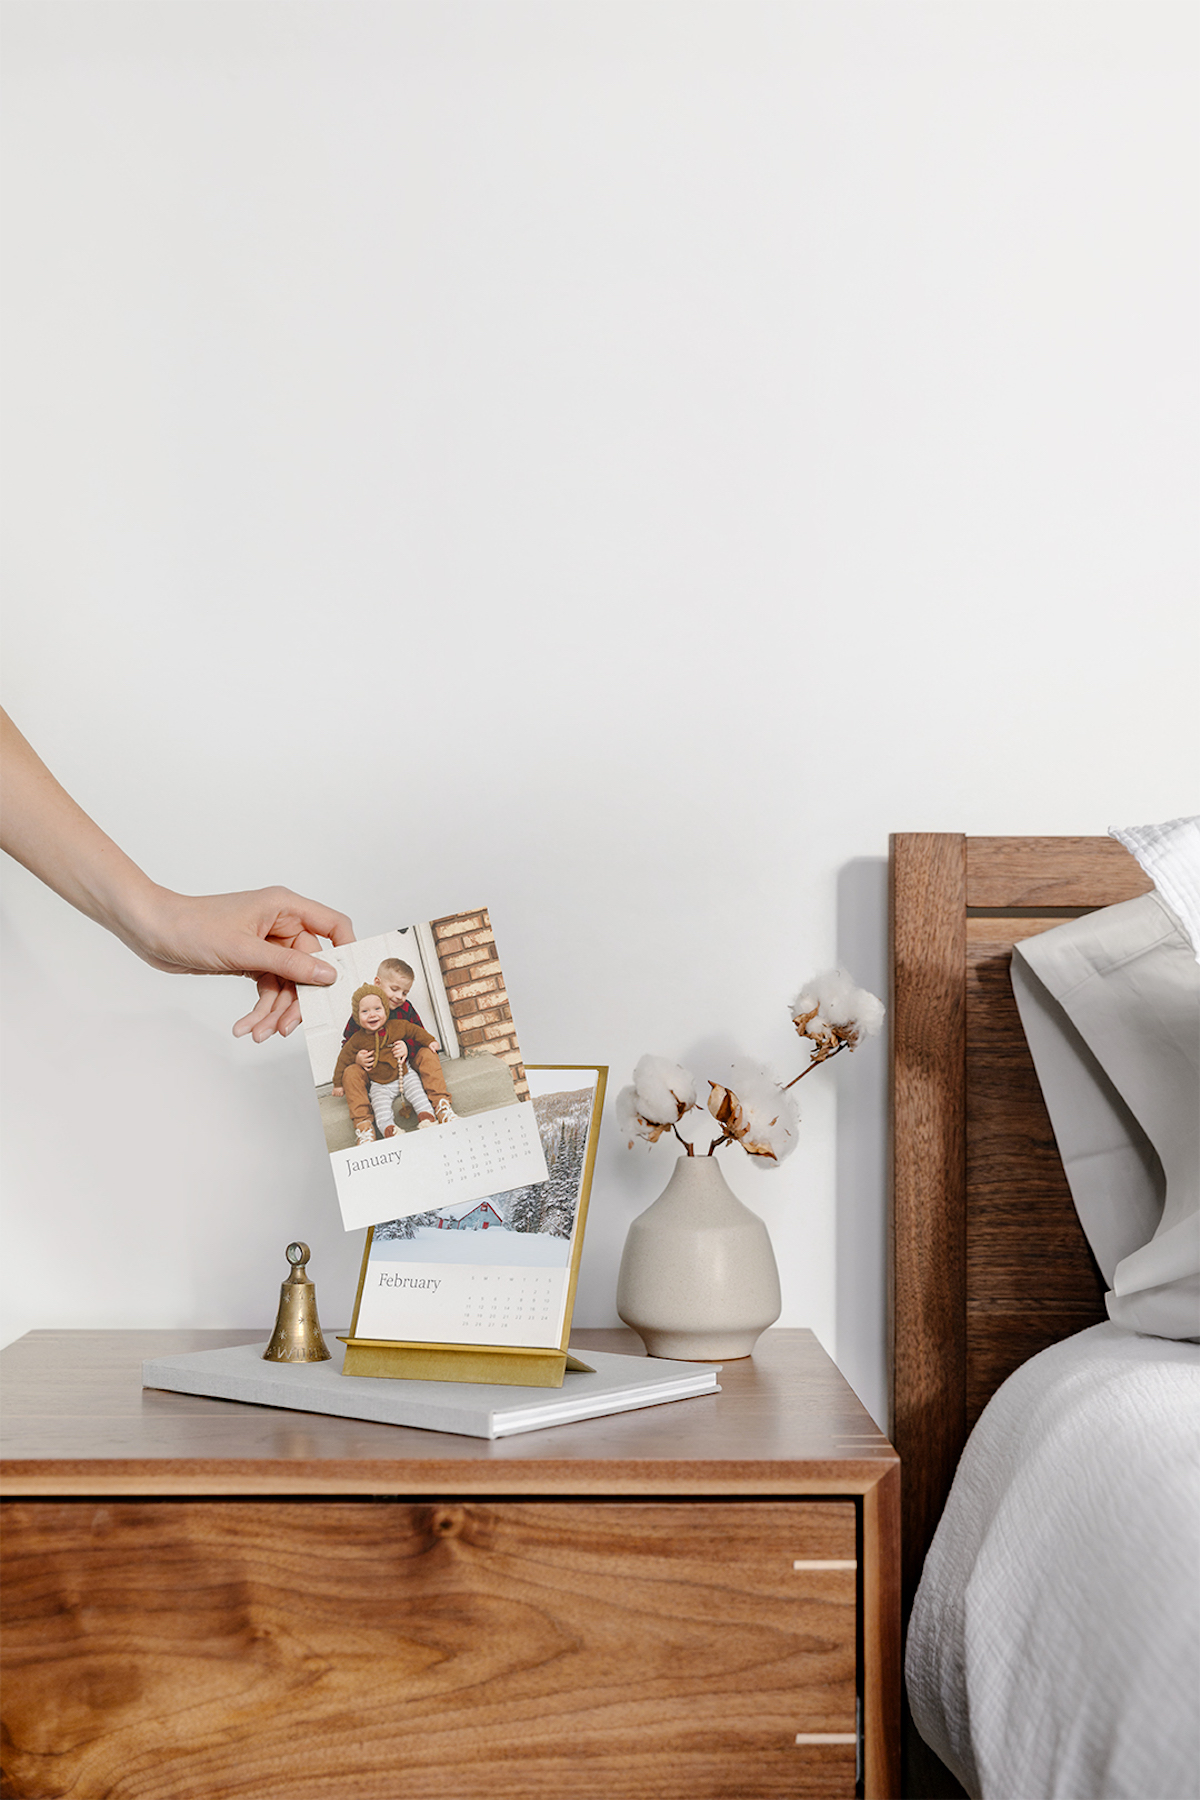 Woman's hand changing month on nightstand calendar